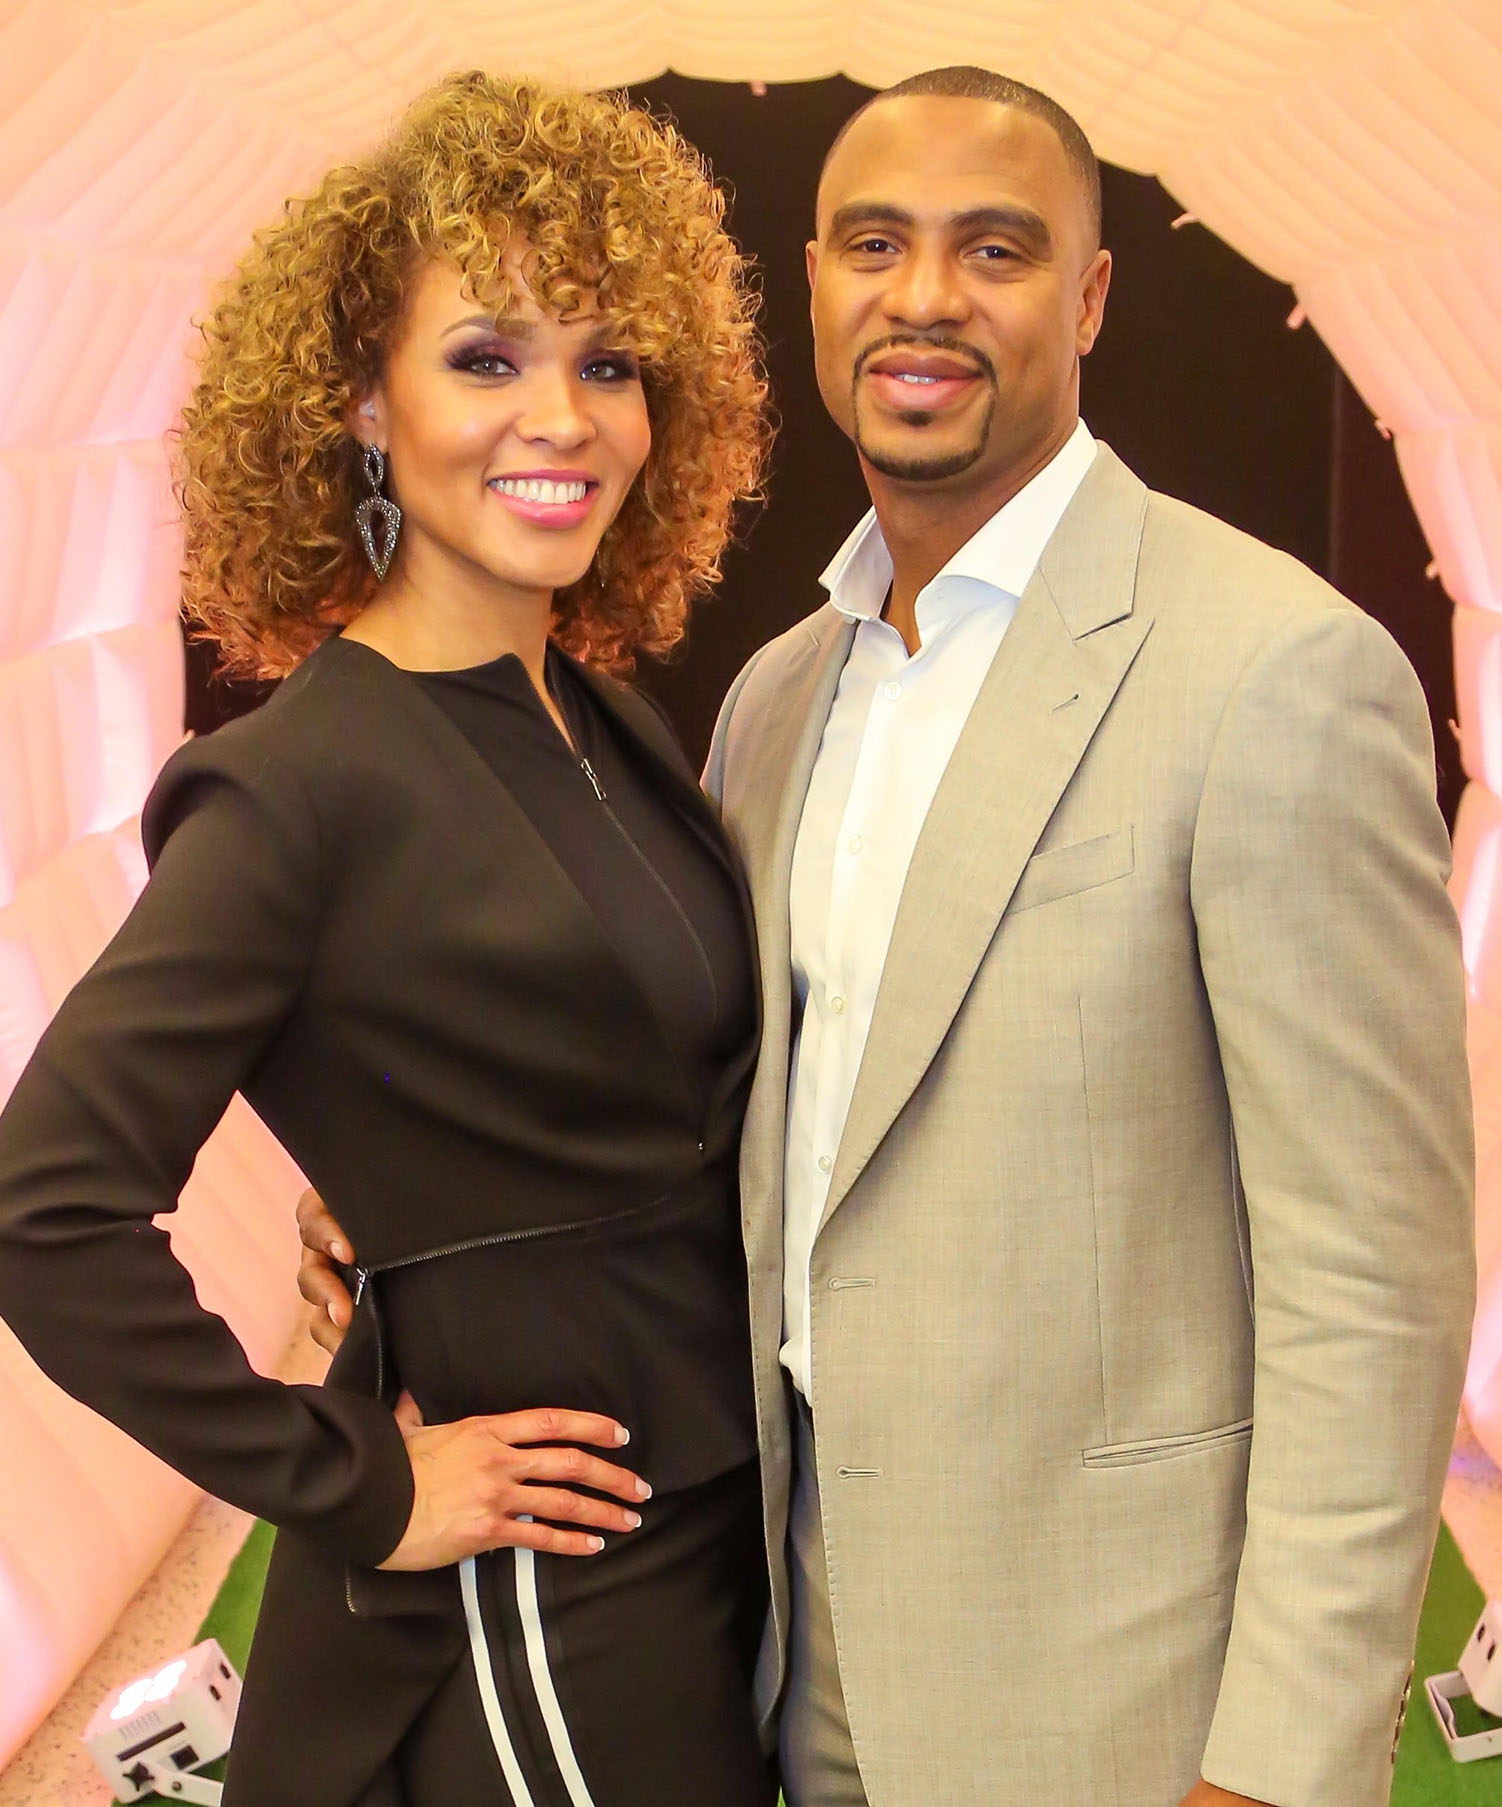 Dr. Heather Brown has made a name for herself through her successful and high-profile dental practice. Her husband Eric is a former NFL player and Super Bowl champion currently serving as an ambassador for the Houston Texans. Together, this powerful duo sets the bar high in grace, style and excellence.